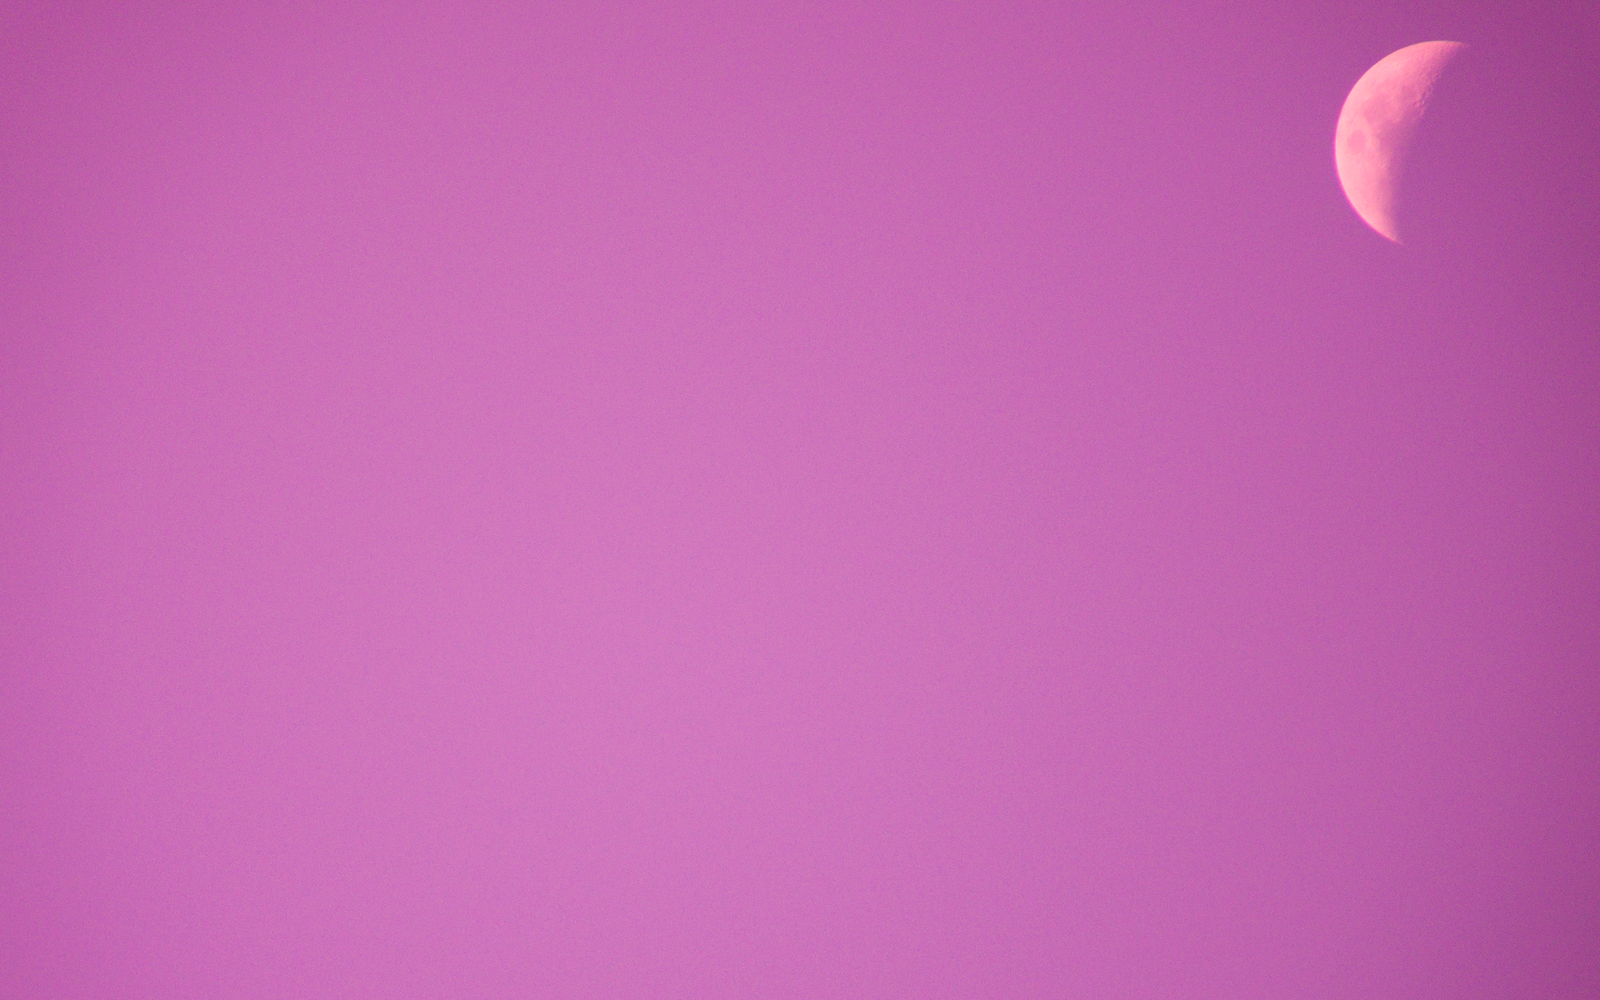 pink wallpaper web: Baby Pink Wallpapers Pink Baby Background Wallpaper